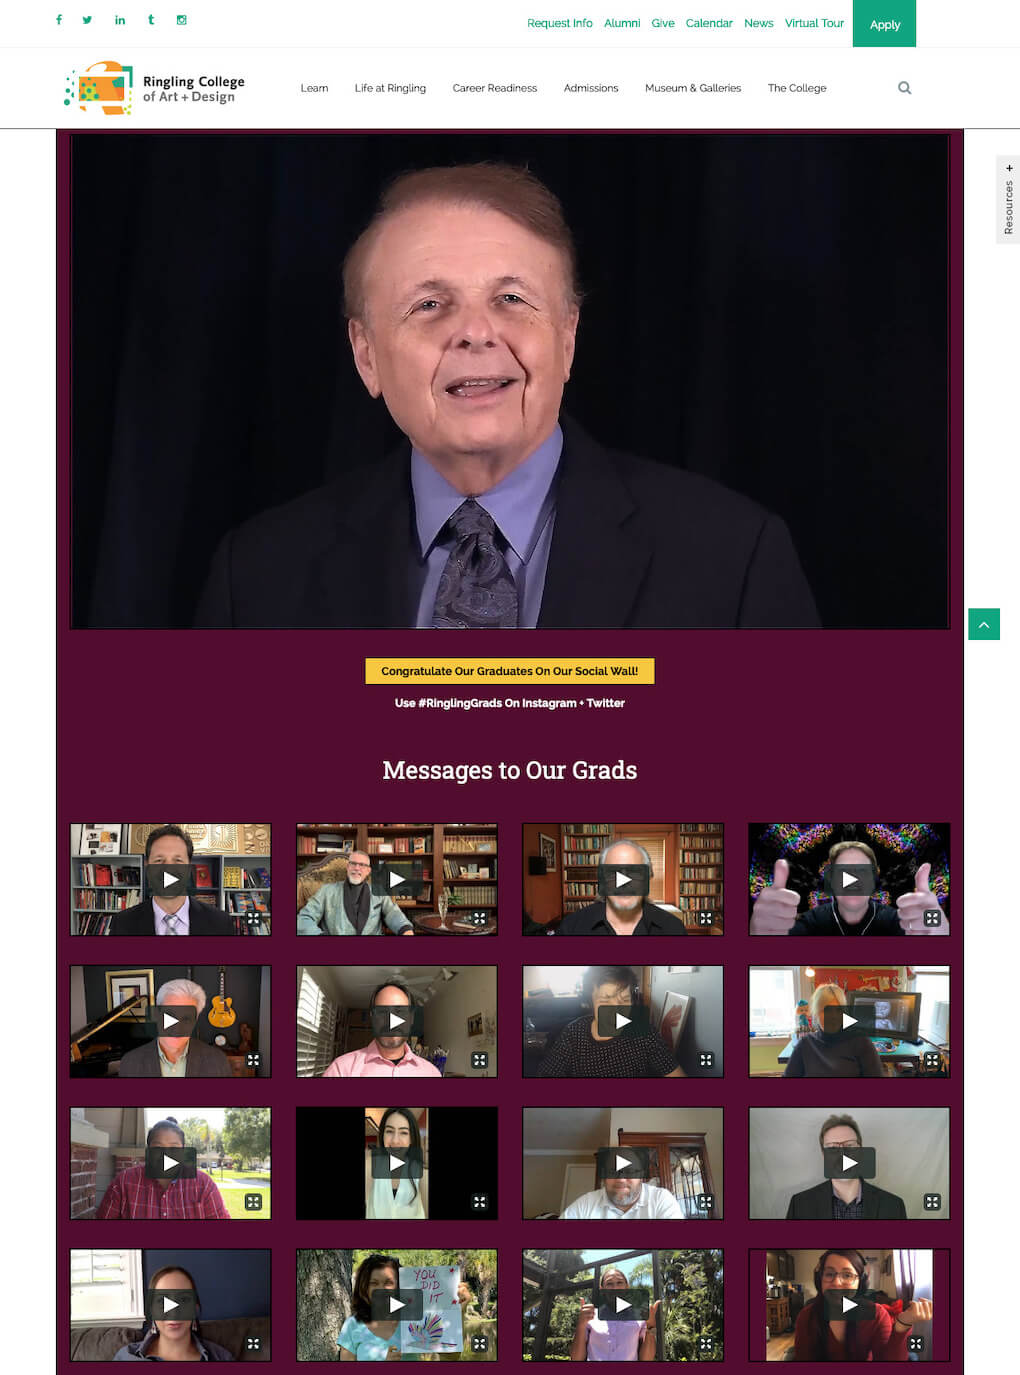 Top section of the Ringling website. Right at the top, there's a video message from the Dean as well as thumbnails for more video messages to the graduates, sent in by staff, alumni, etc